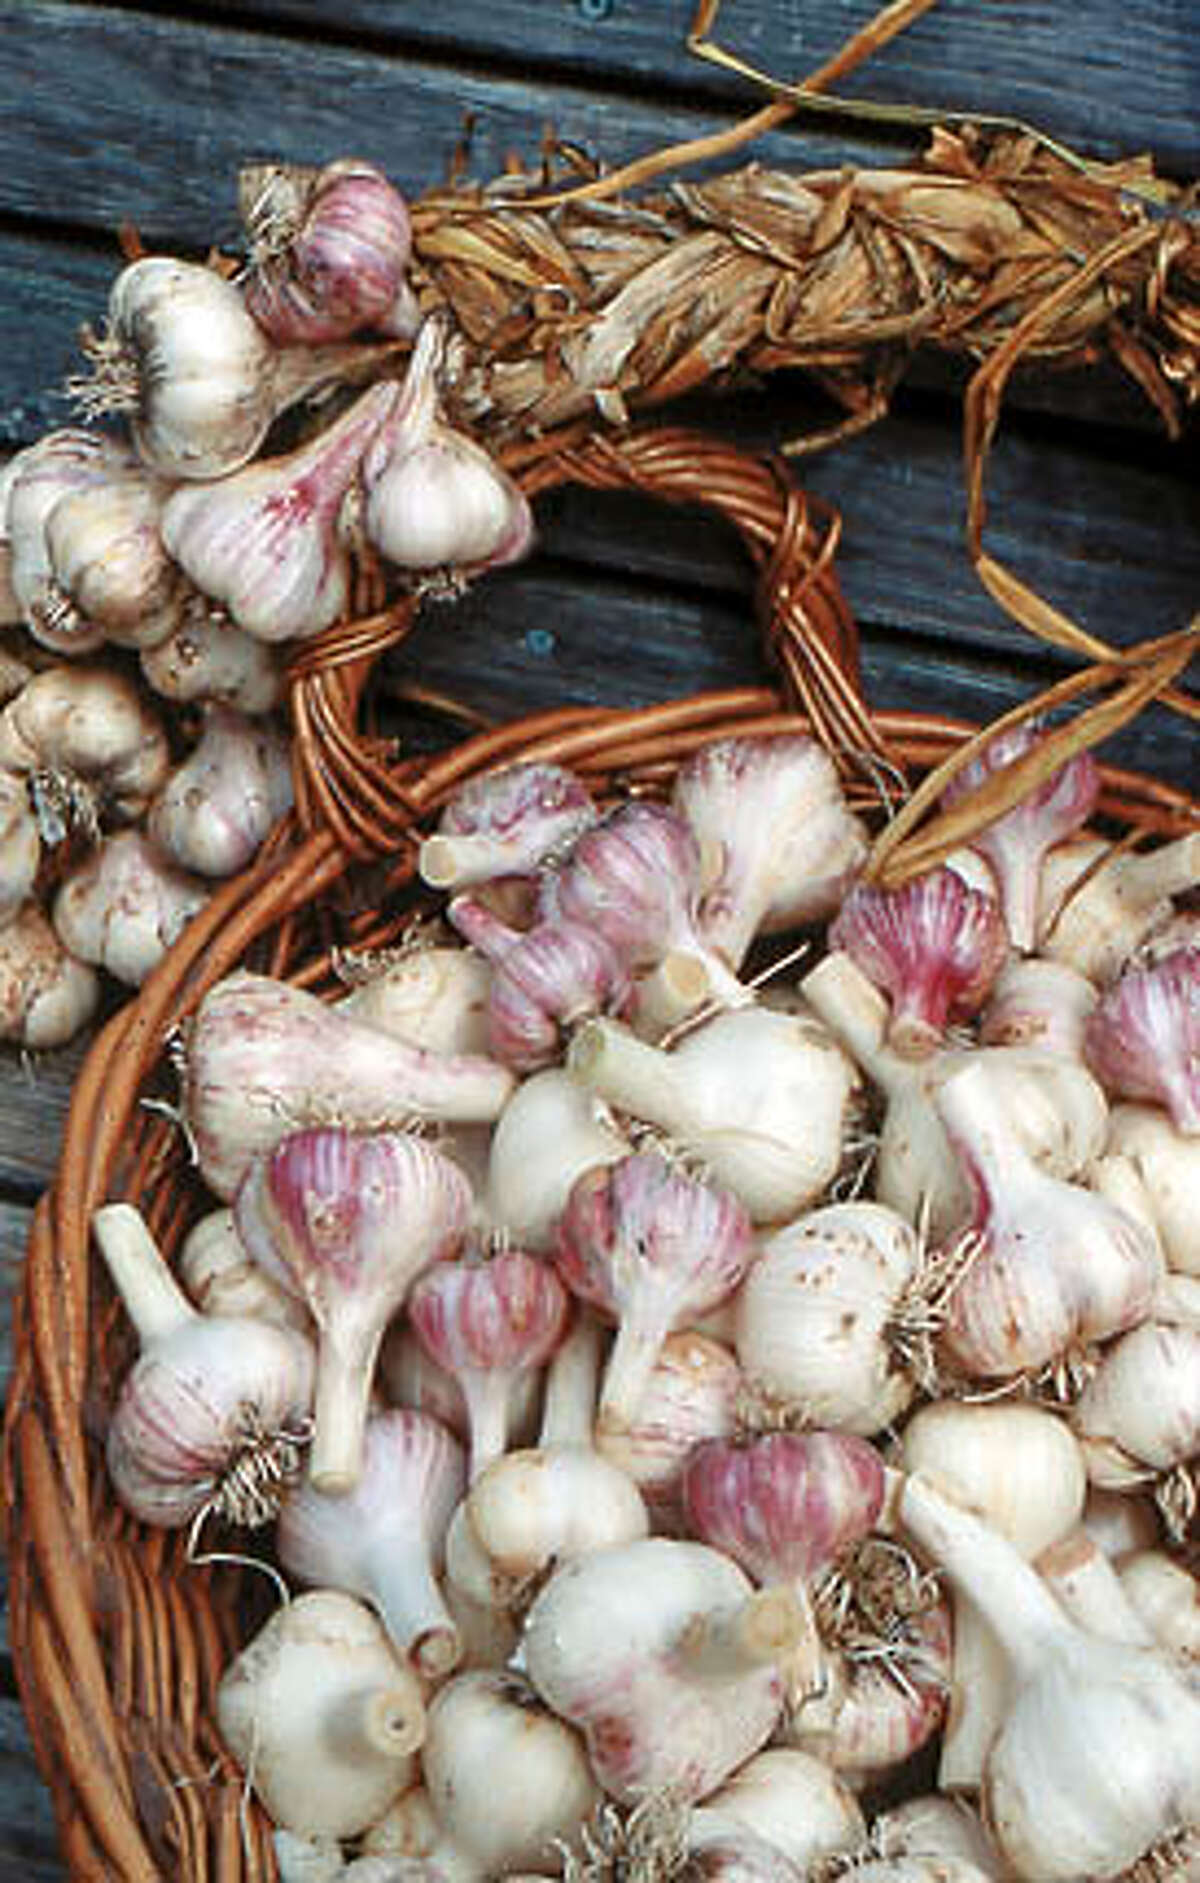 The softneck variety is the most common type of garlic.